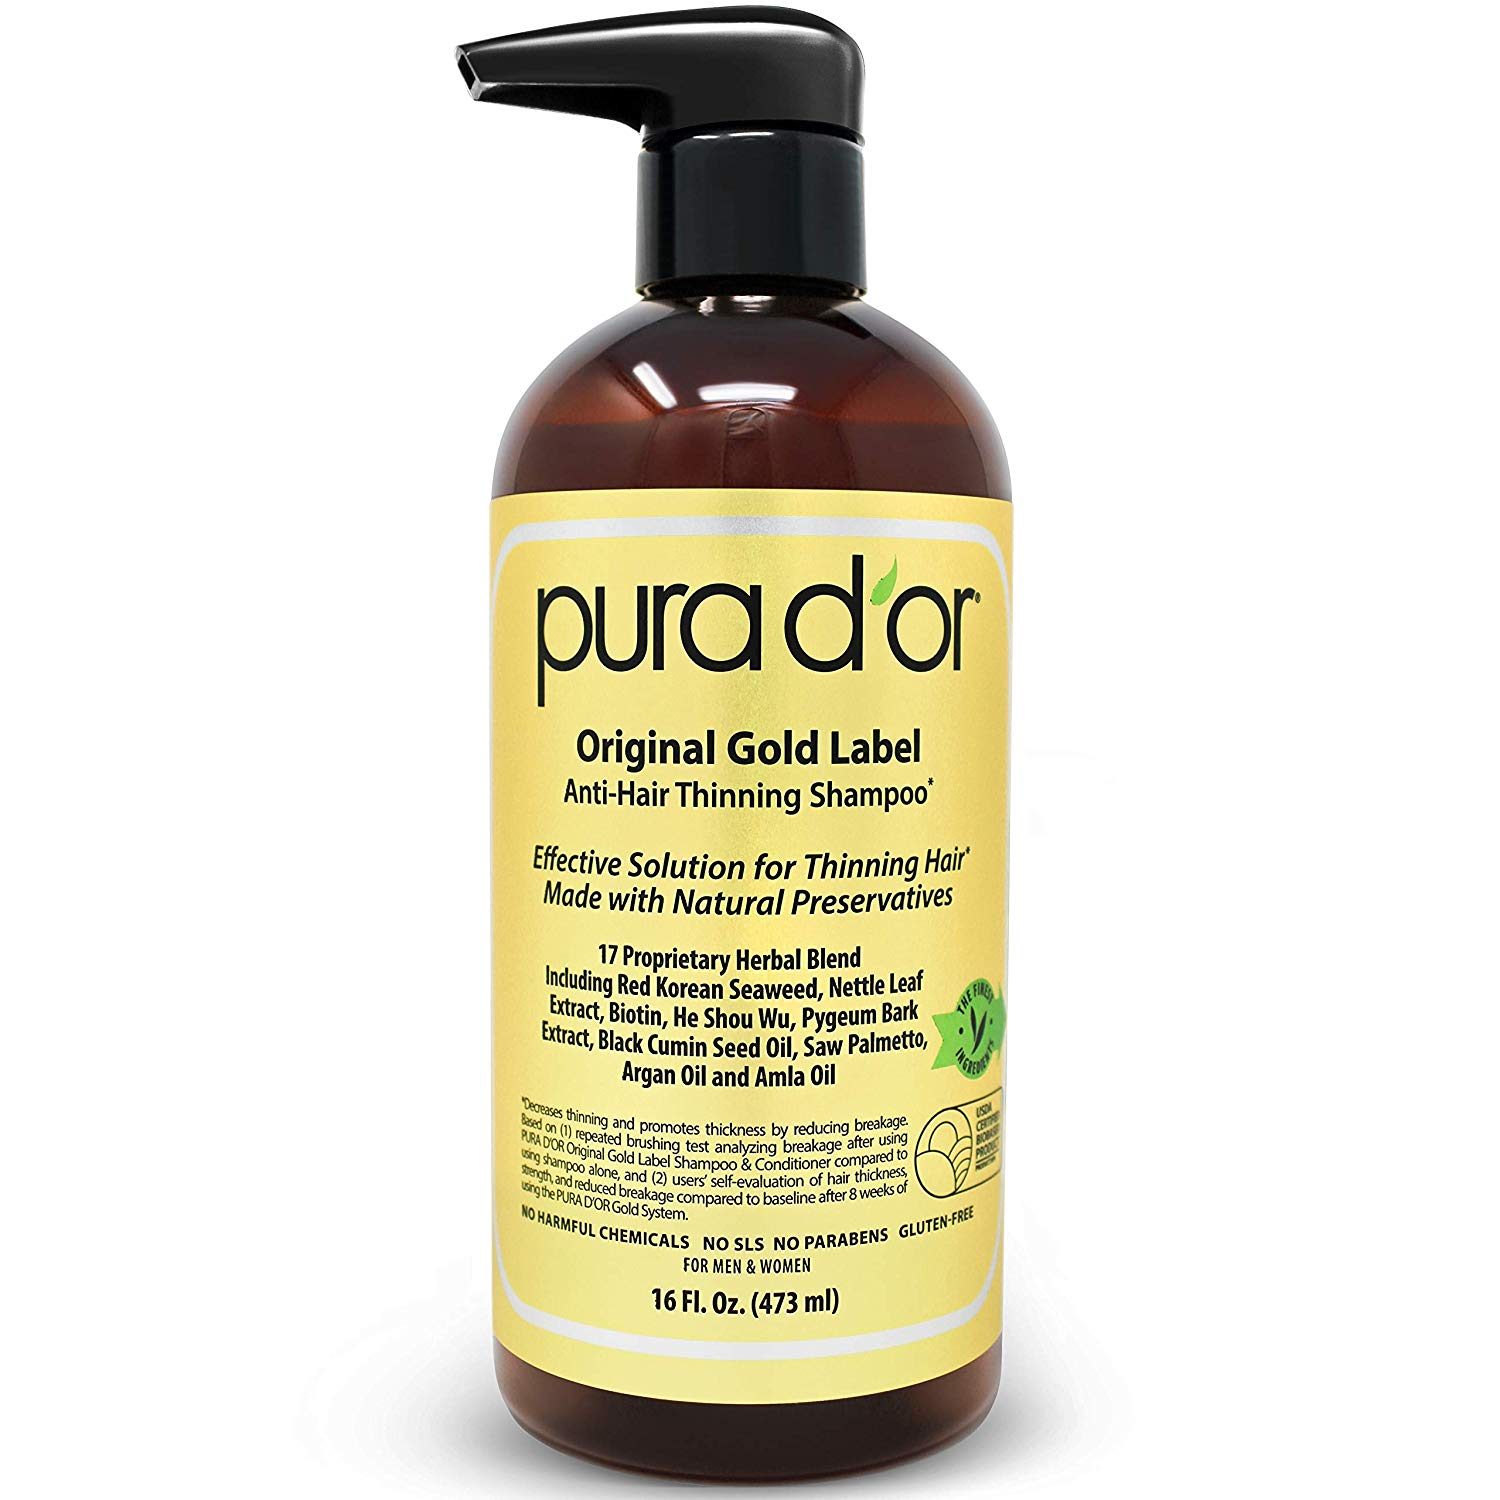 Pura d'or original gold label anti-hair thinning shampoo